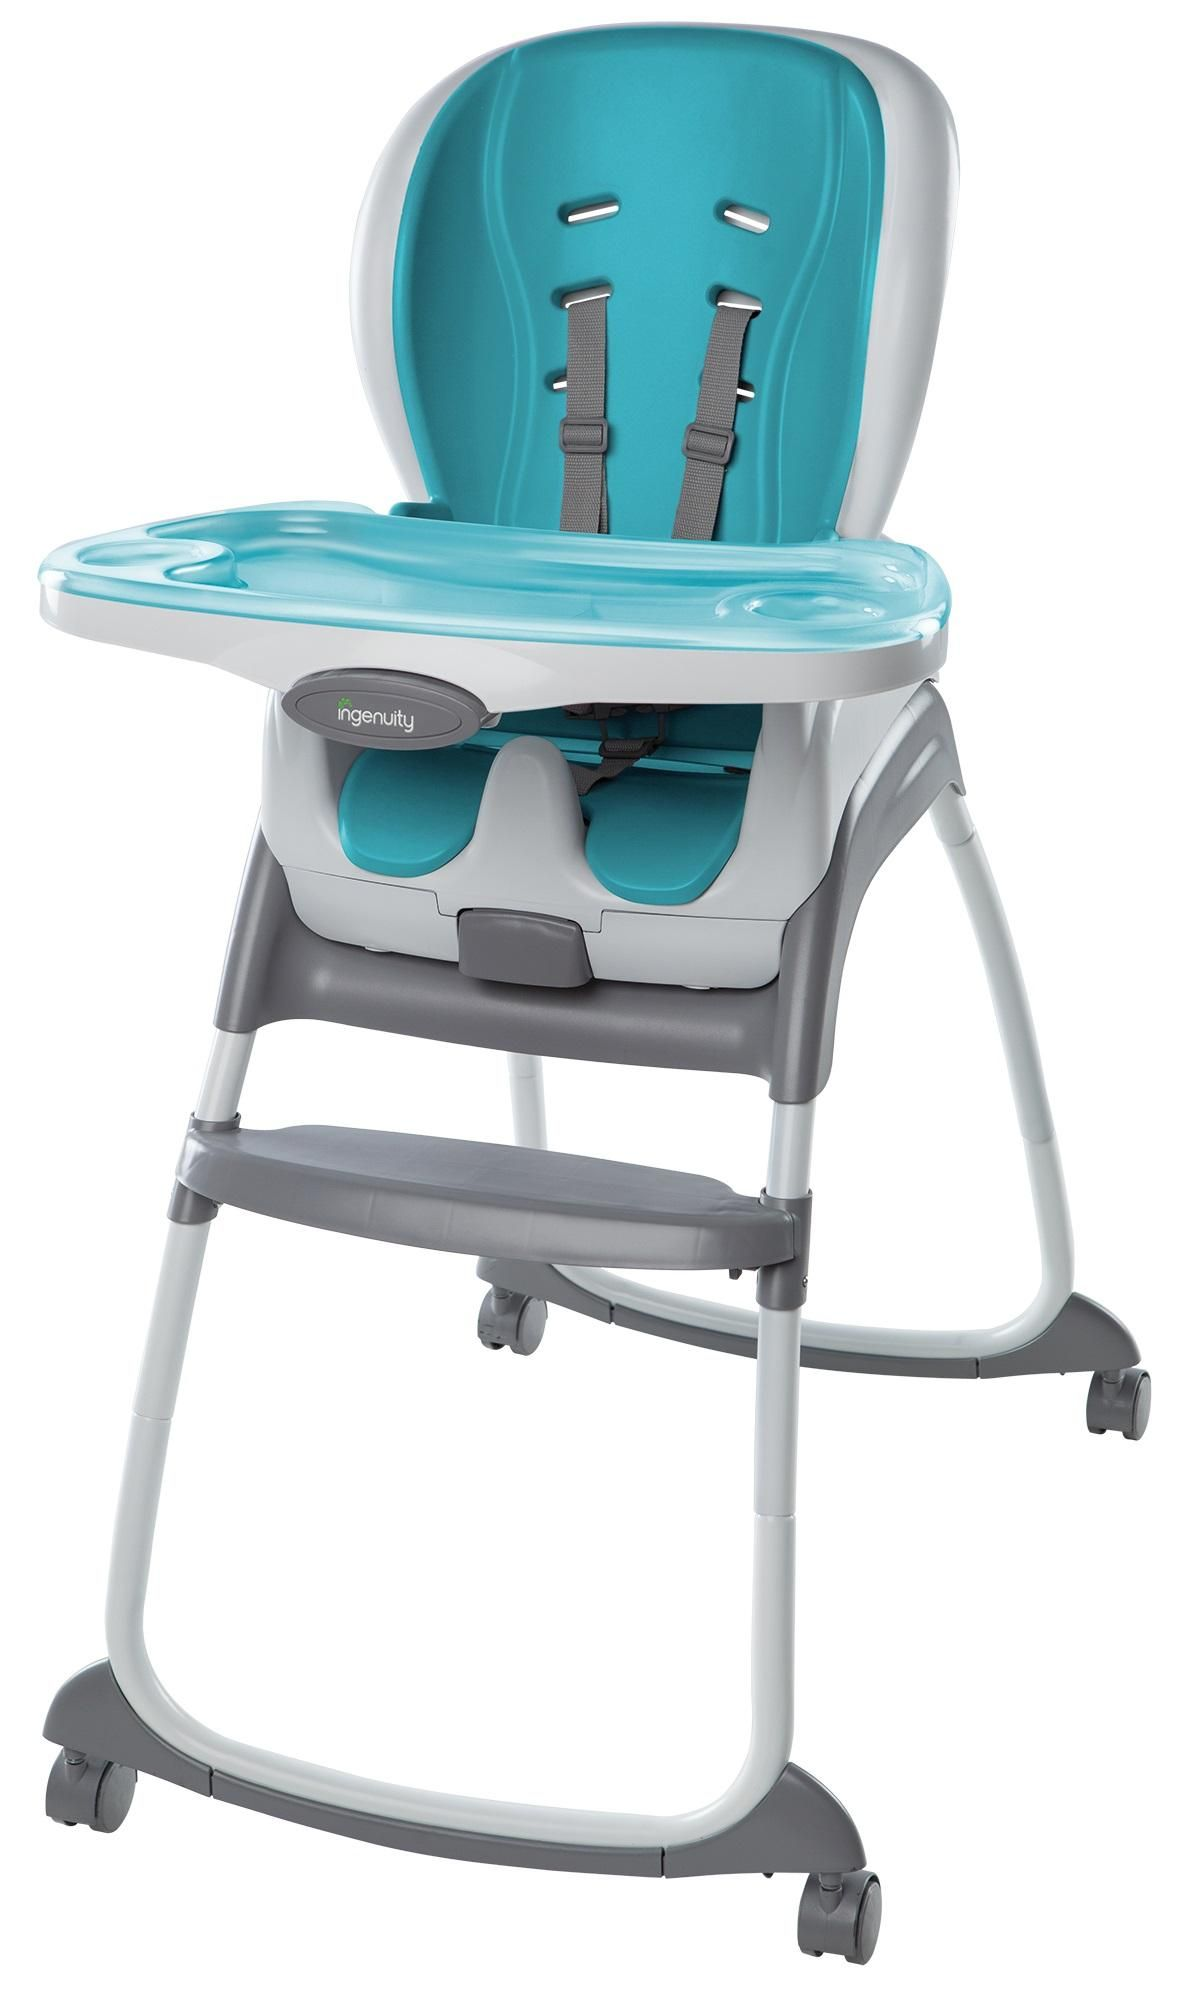 best high chair for baby rocker recliner chairs 2018 moms picks highchairs pinterest 2016 babycenter